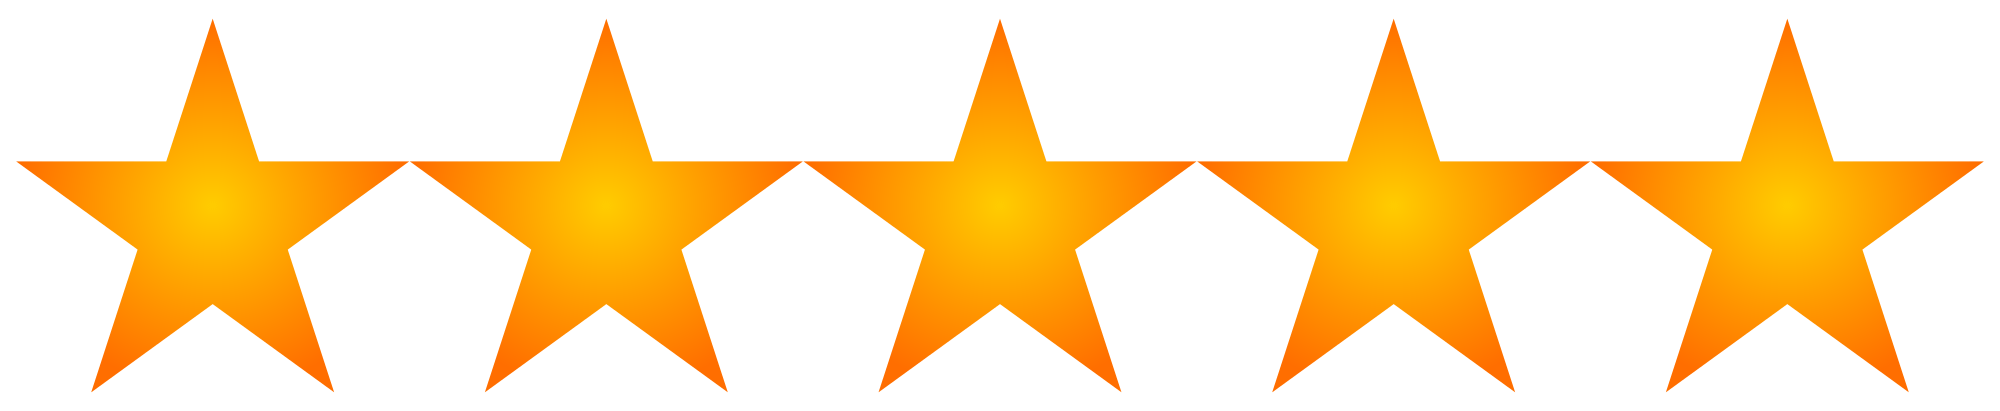 2000px-5_stars.svg.png